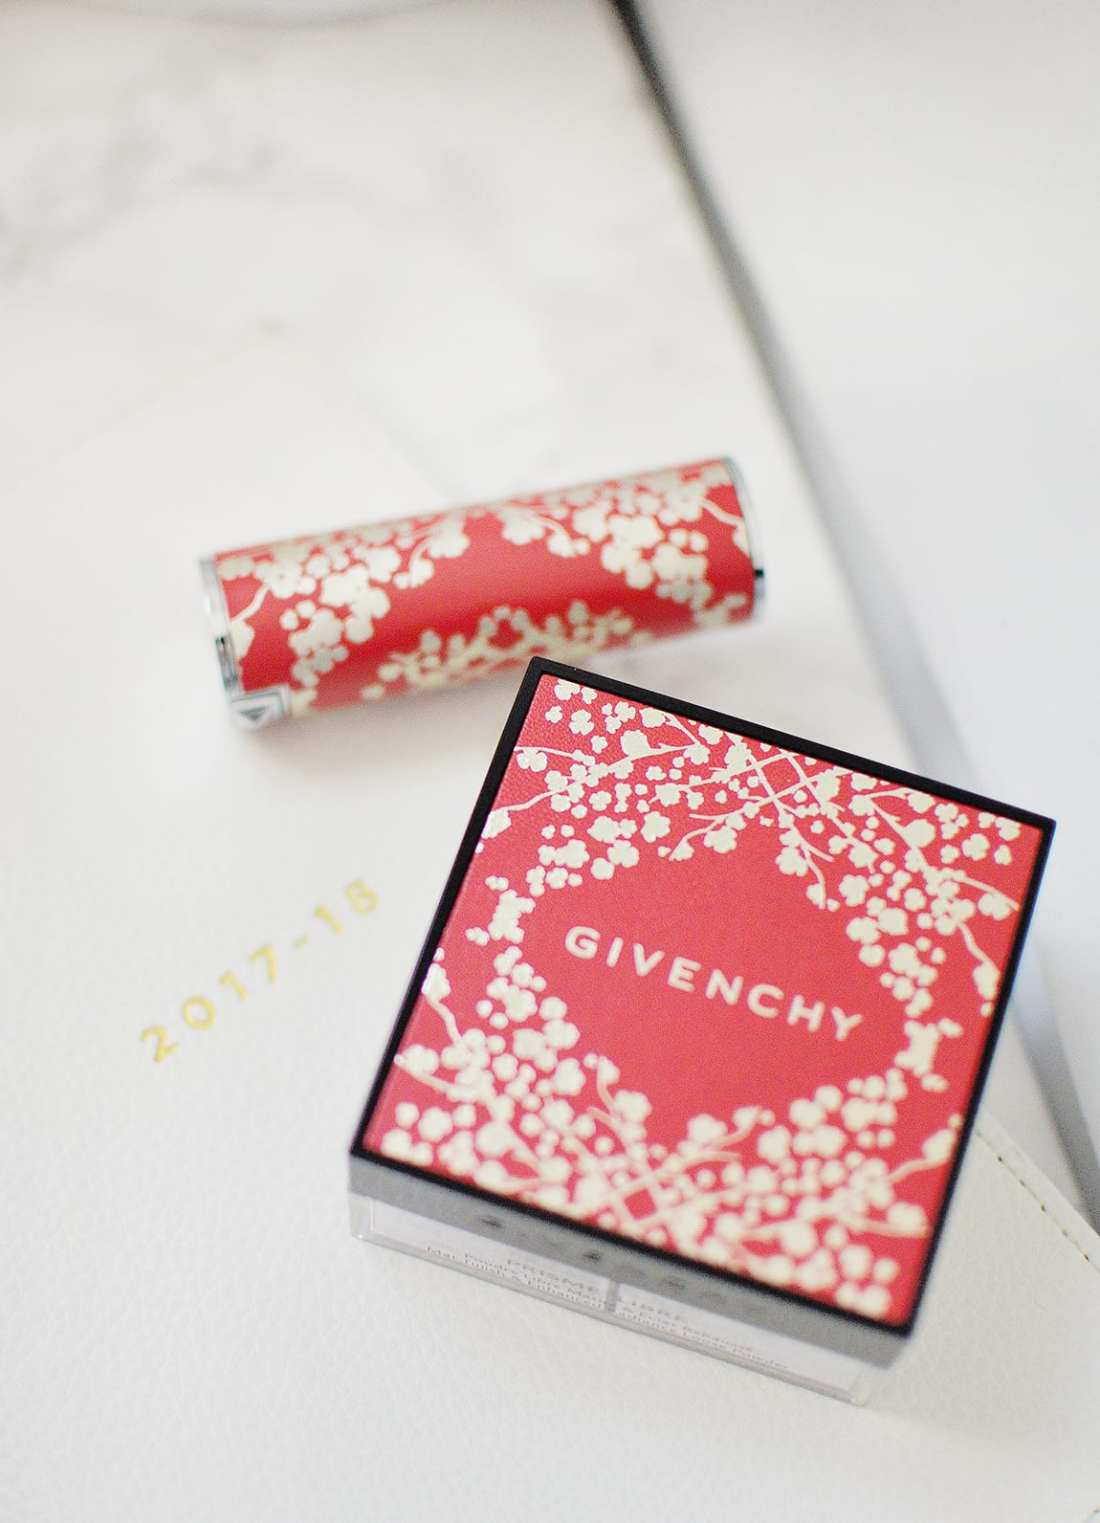 The Givenchy Lunar New Year 2018 collection features two products: a powder and lipstick! Every year, the packaging is updated this year's all about sakura!